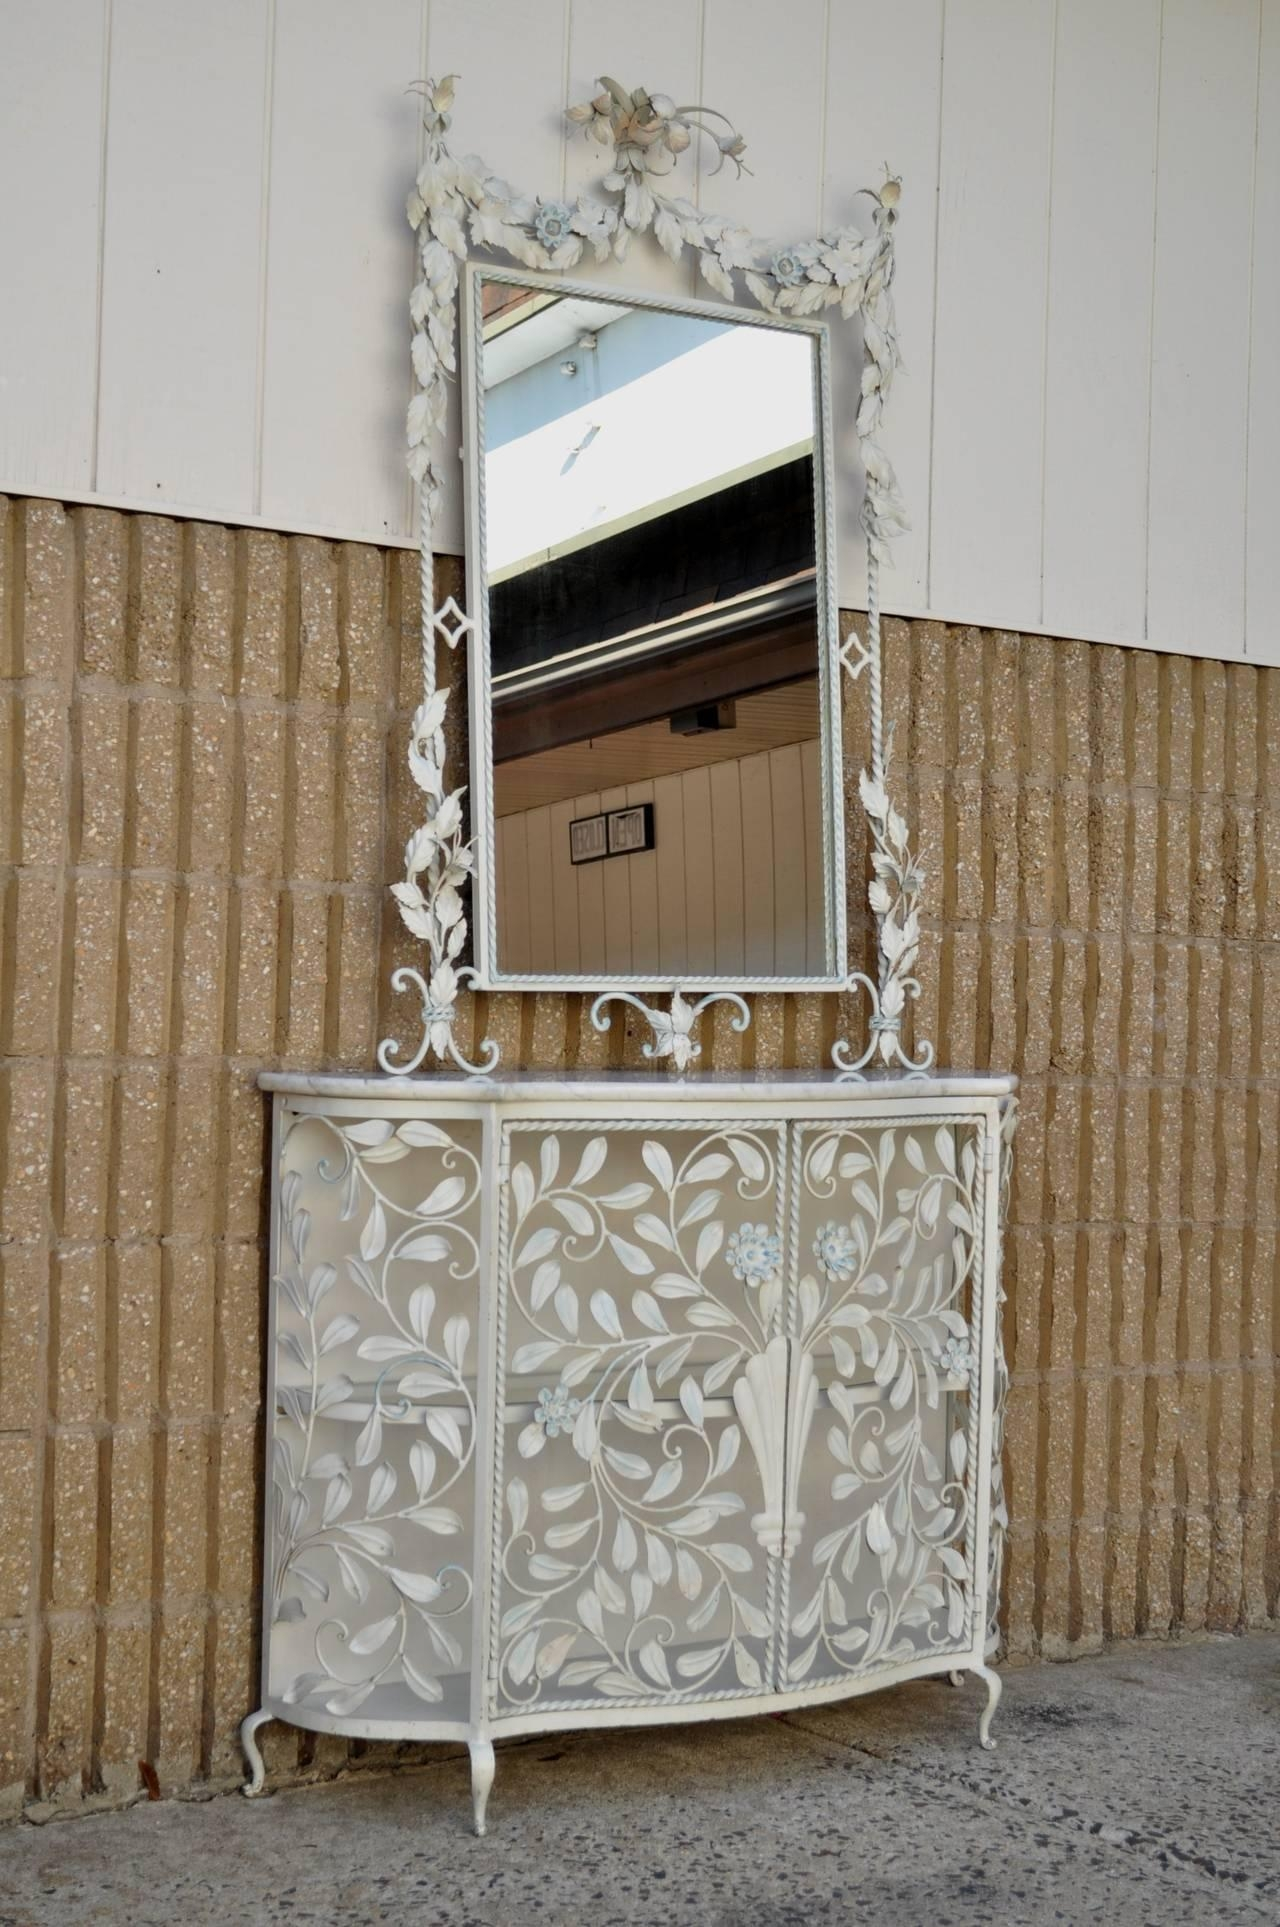 Ornate French Floral Wrought Iron Mirror And Marble Top Console Throughout Rod Iron Mirrors (Image 14 of 20)